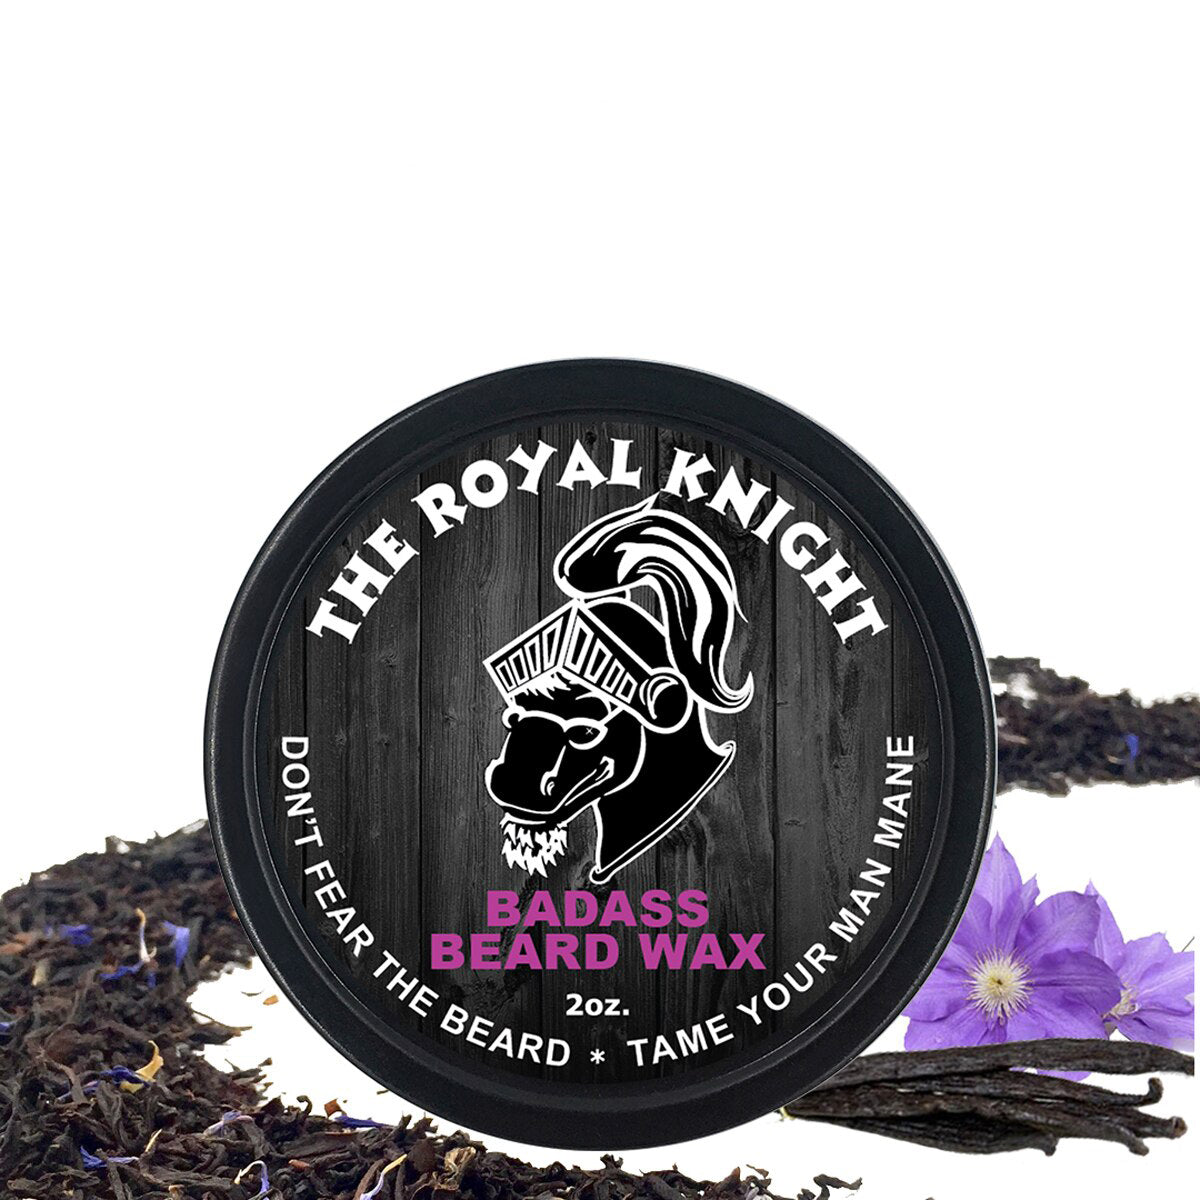 Badass Beard Wax - The Royal Knight